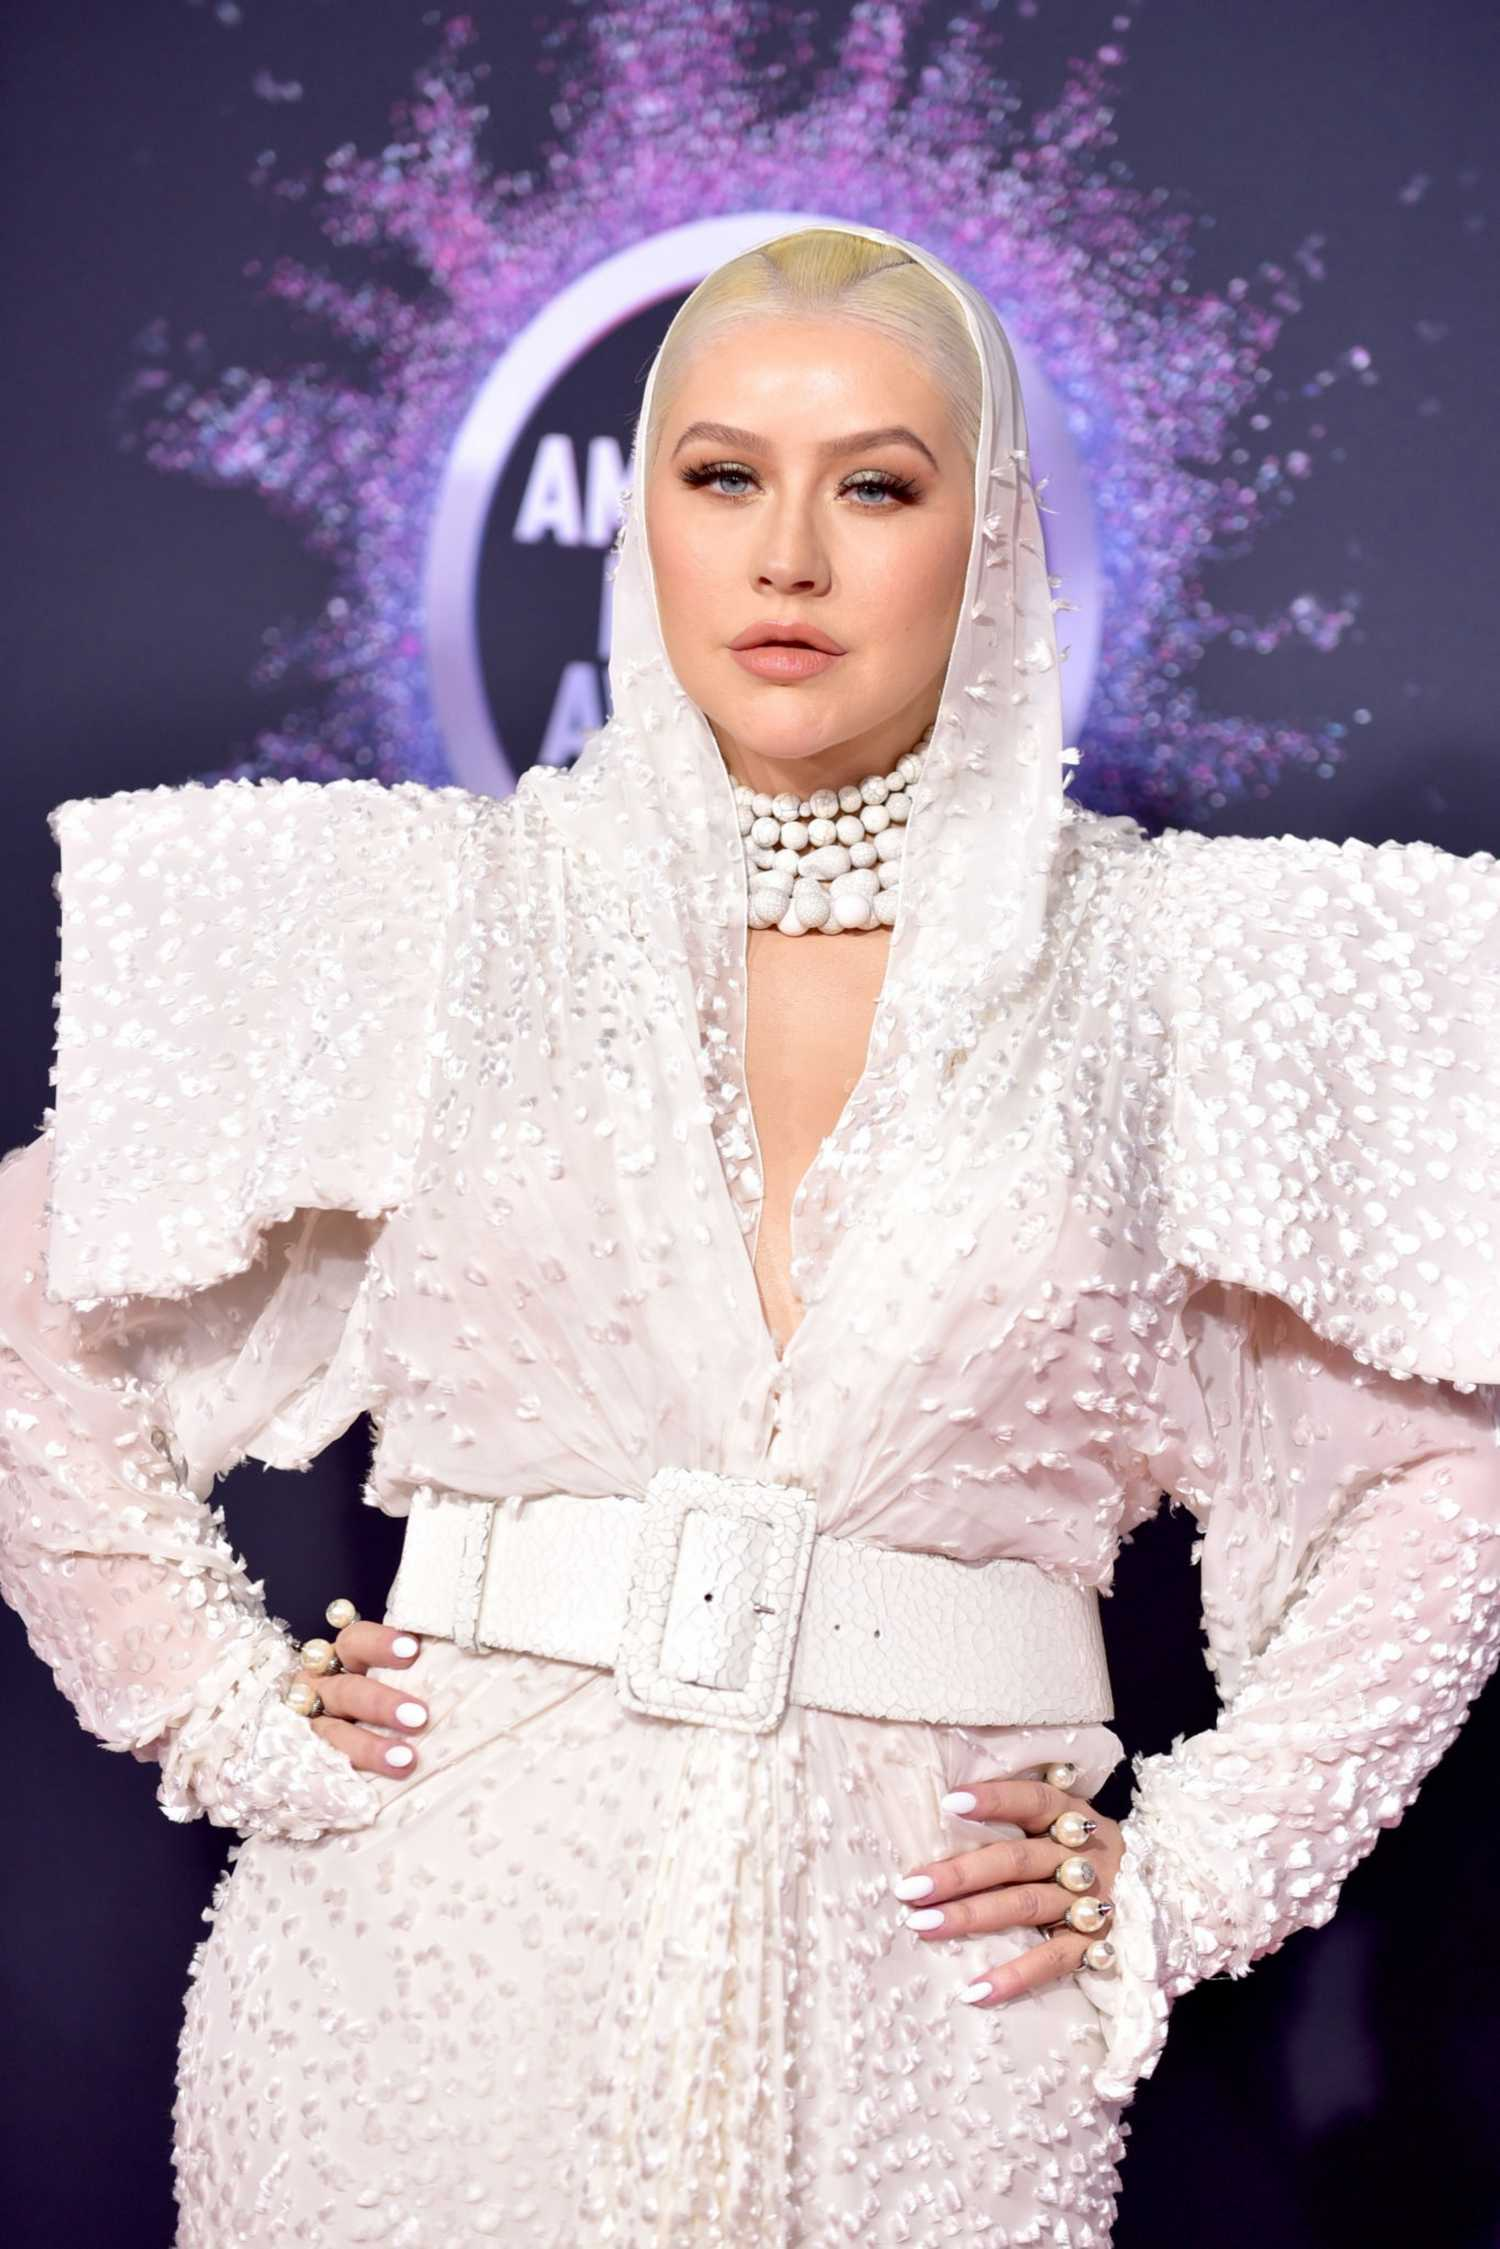 Christina_Aguilera_-_2019_American_Music_Awards_at_Microsoft_Theater_on_November_242C_2019-51.jpg